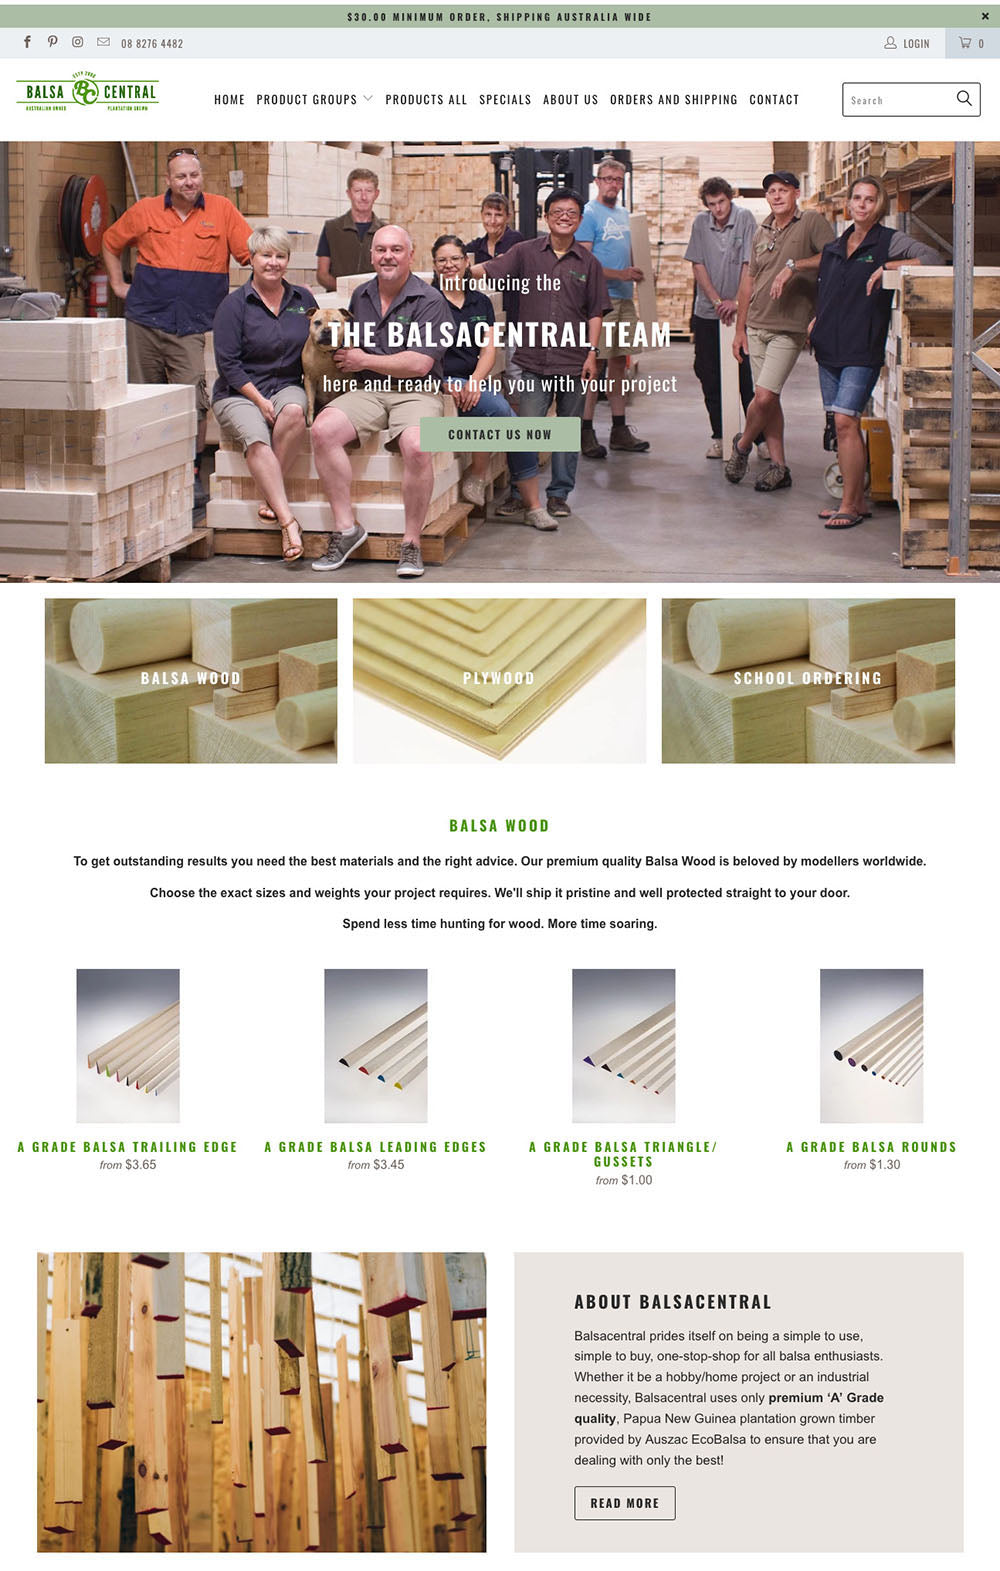 An improved Balsa central's webpage showing different samples of wood and a happy team in the header